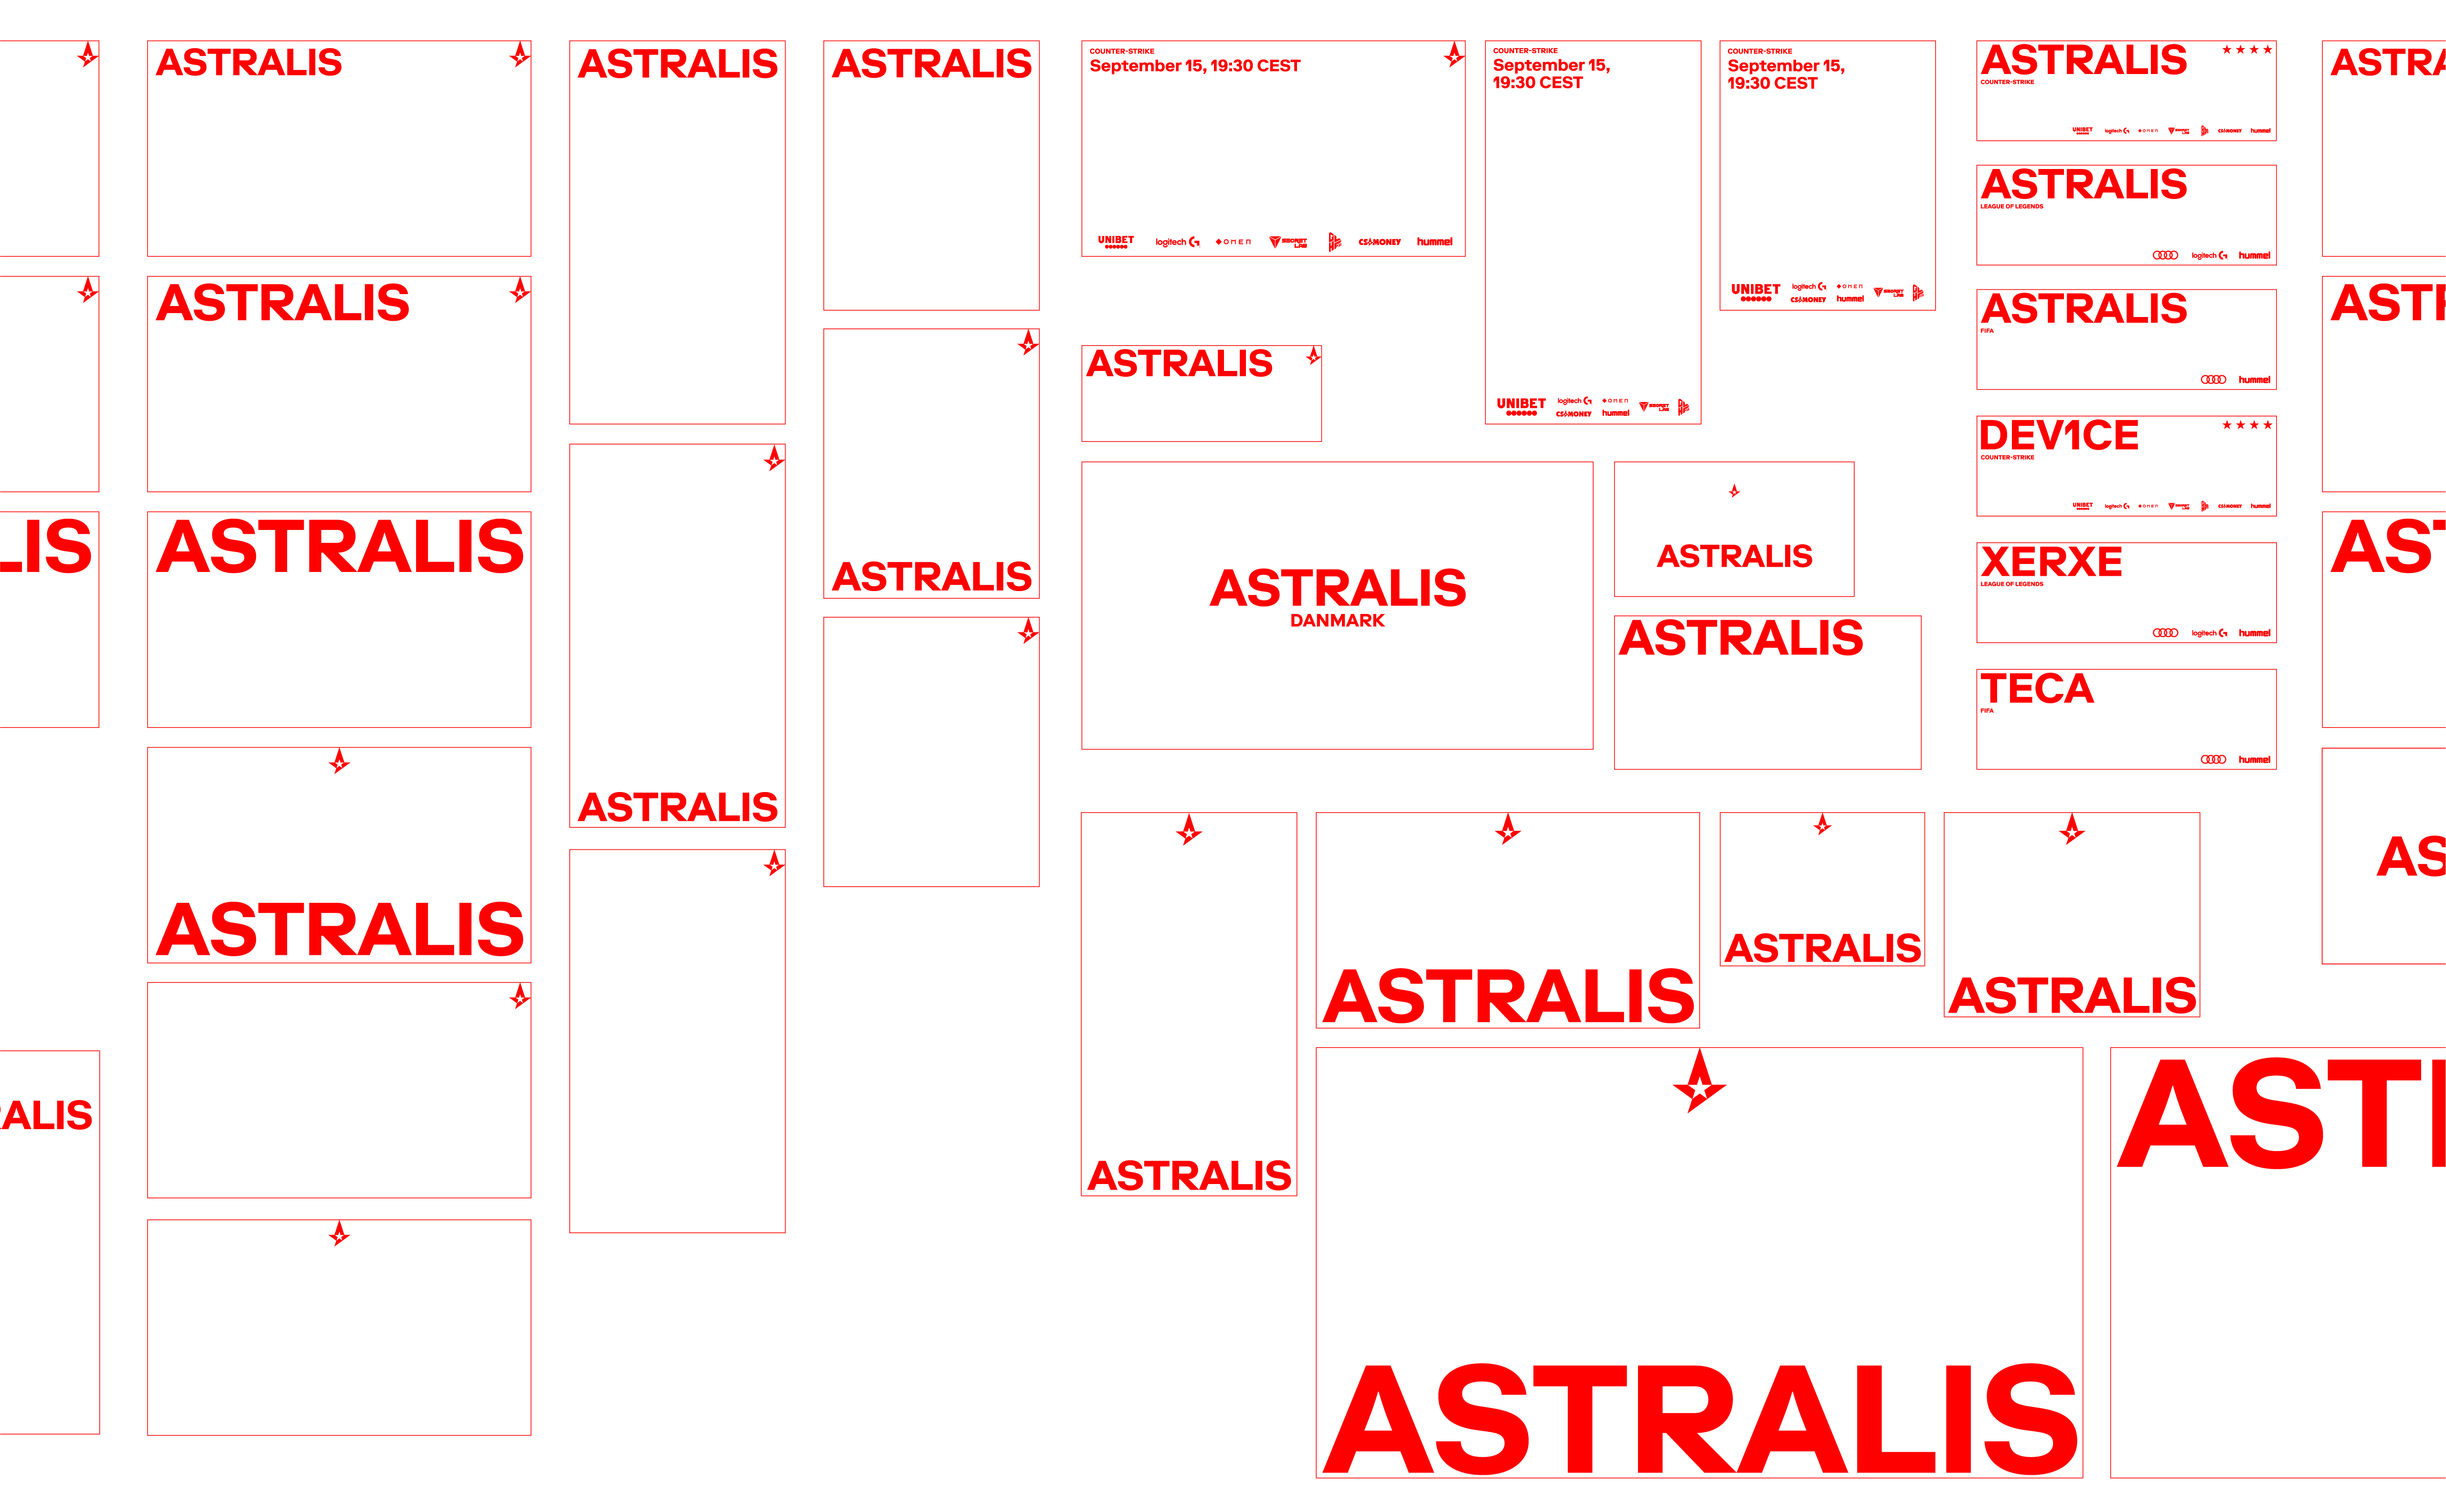 04-ASTRALIS-GRAPHIC-all-formats-outlined@2x-8-1